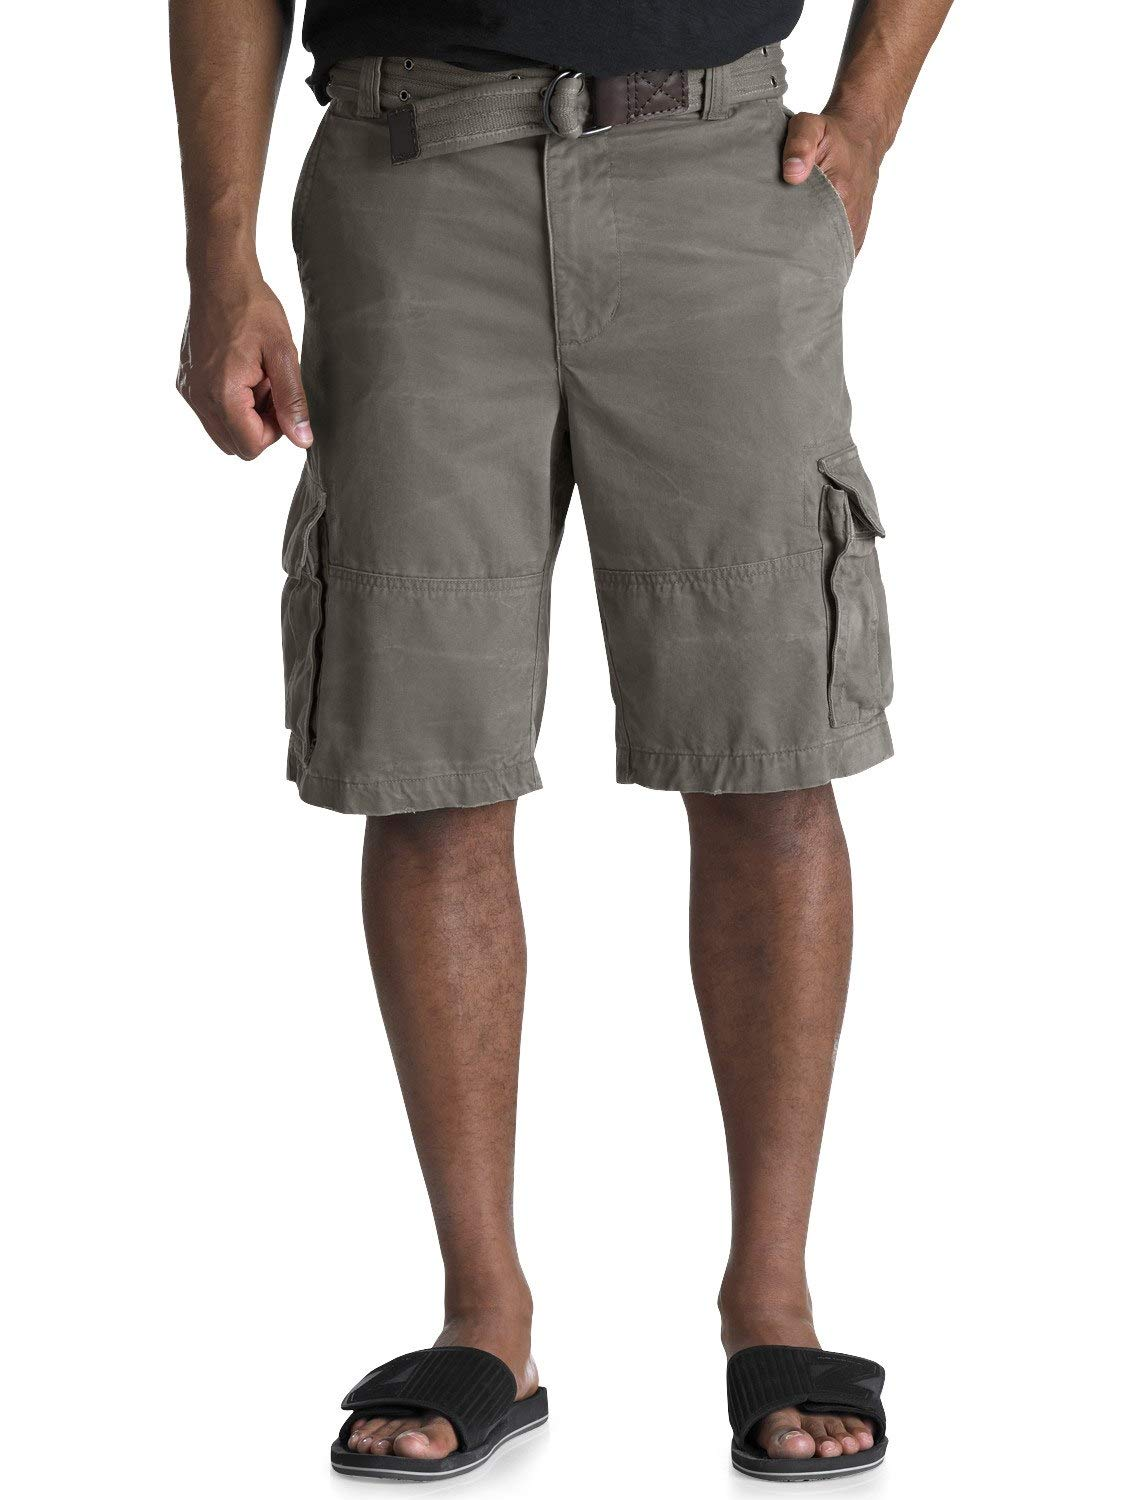 Society of One by DXL Big and Tall Rumpled Cargo Shorts, Heather Grey 50